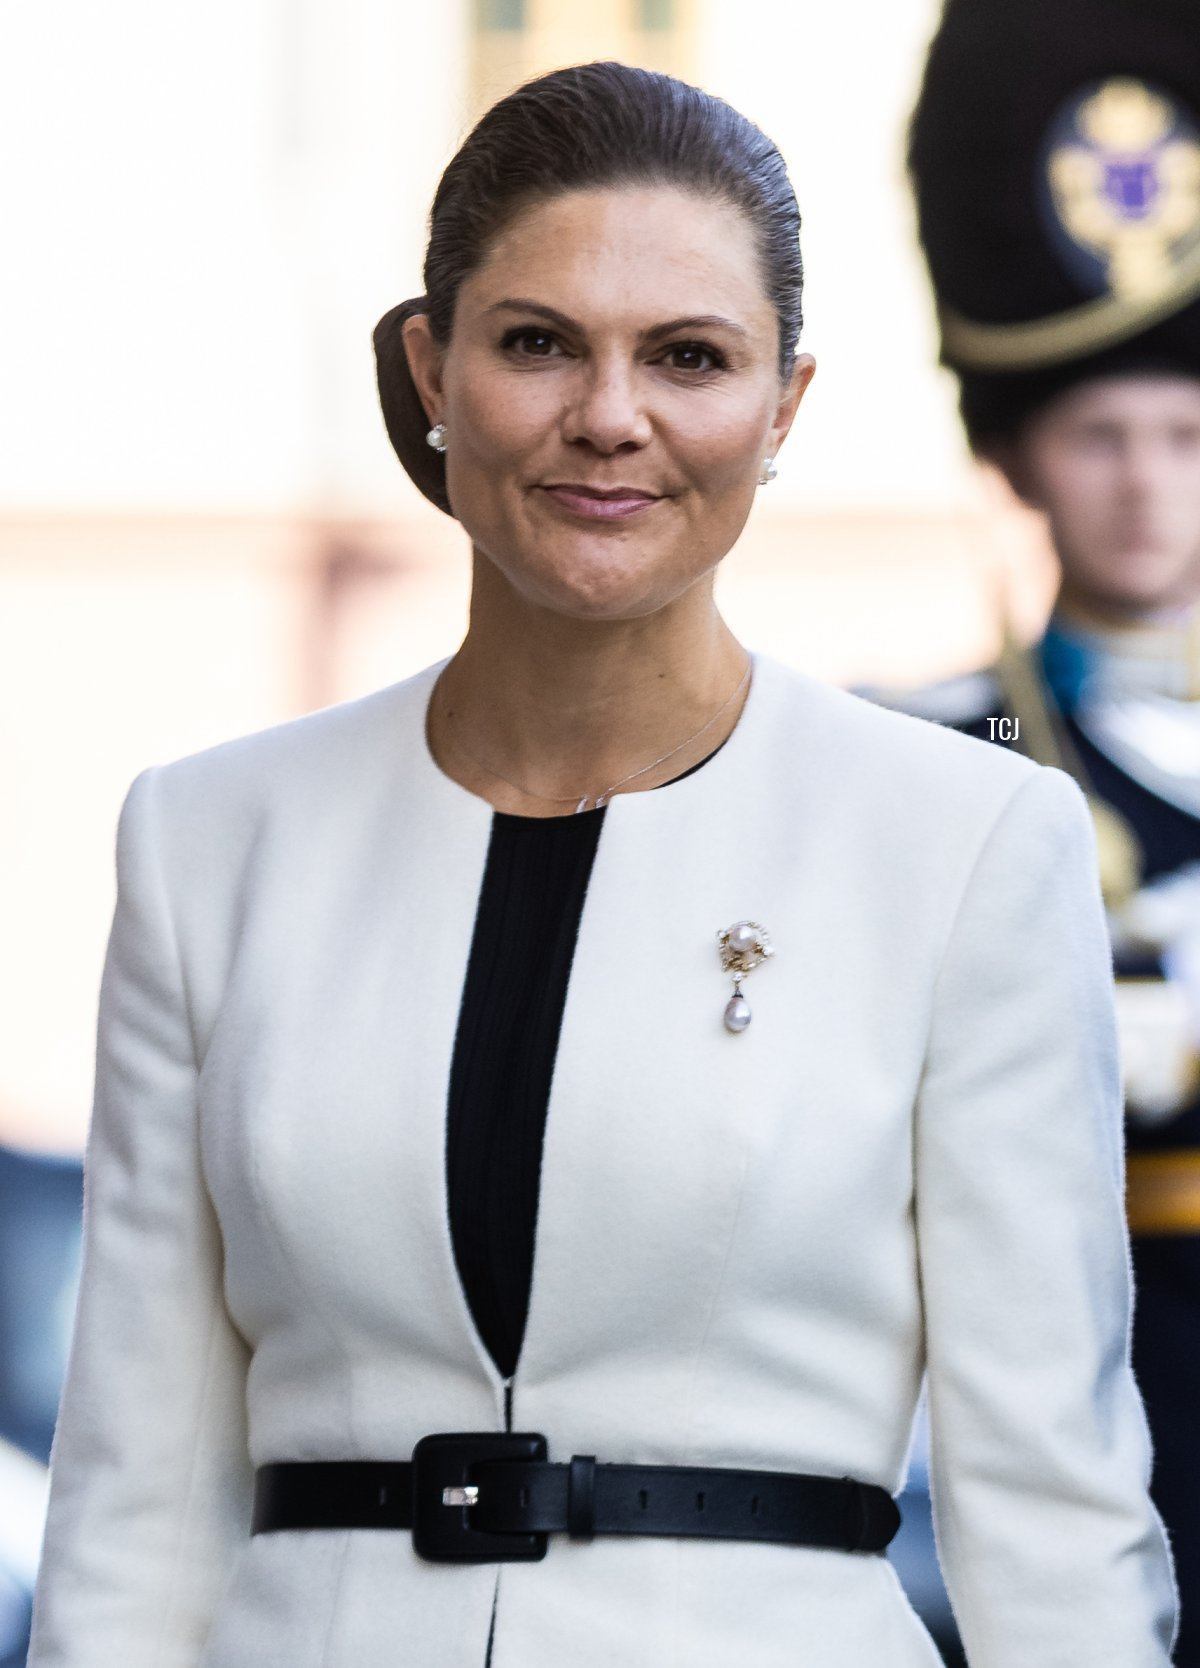 Crown Princess Victoria of Sweden attends a ceremony in connection with opening of the Swedish Parliament for the 2021/22 work year at the Swedish Parliament House on September 14, 2021 in Stockholm, Sweden